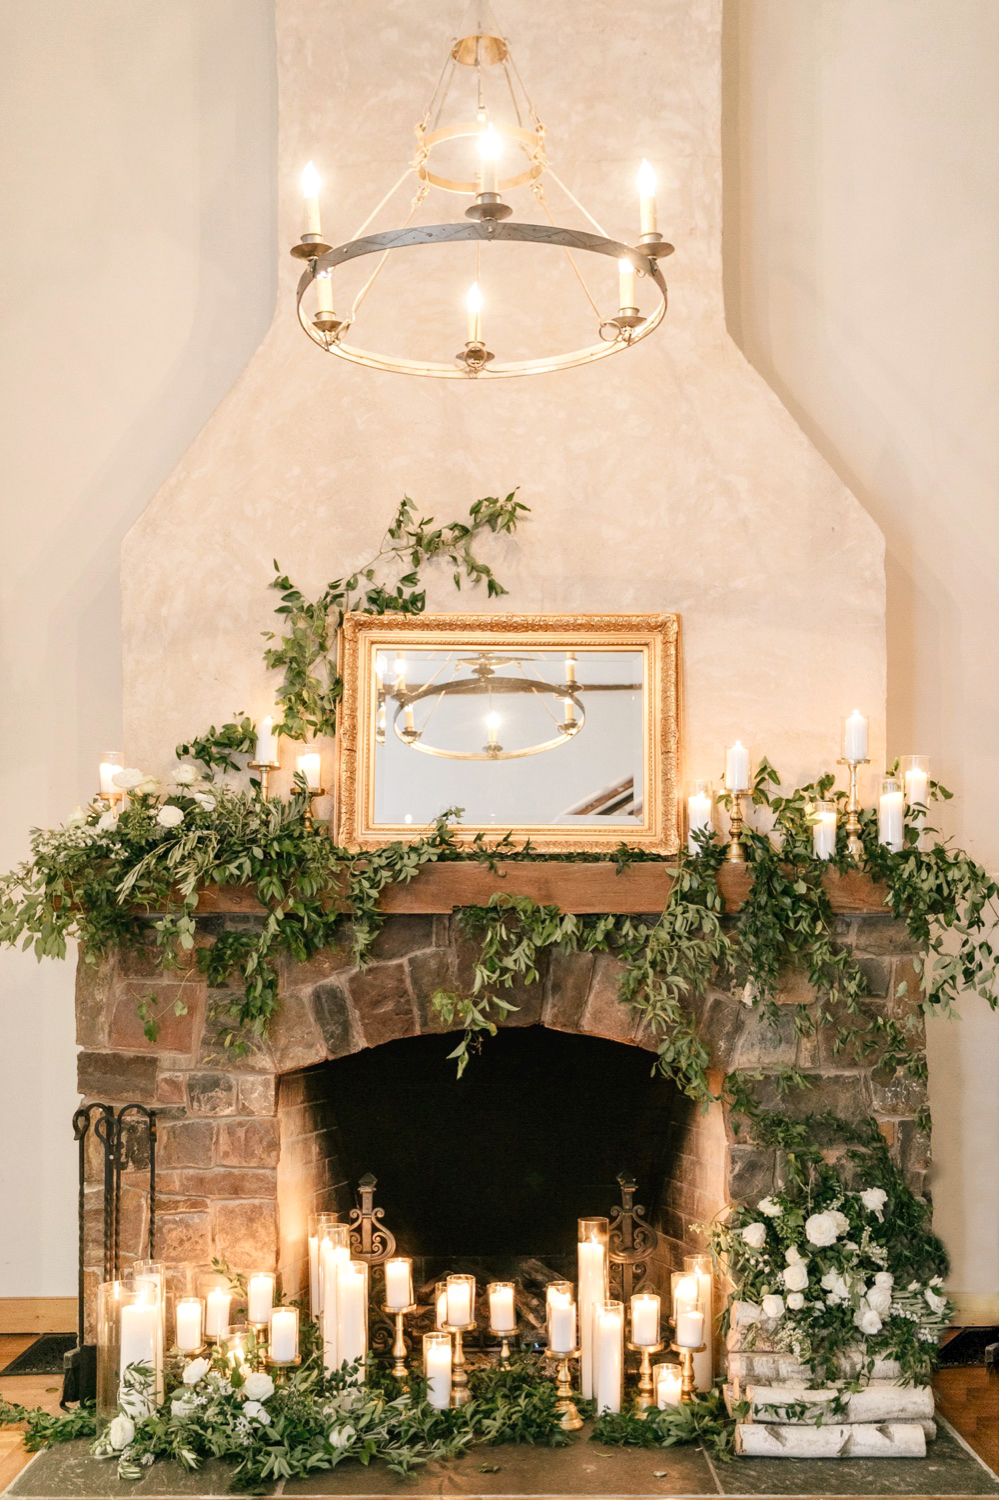 129 The Inn At Barley Sheaf Farm Wedding Candles Decoration Wedding